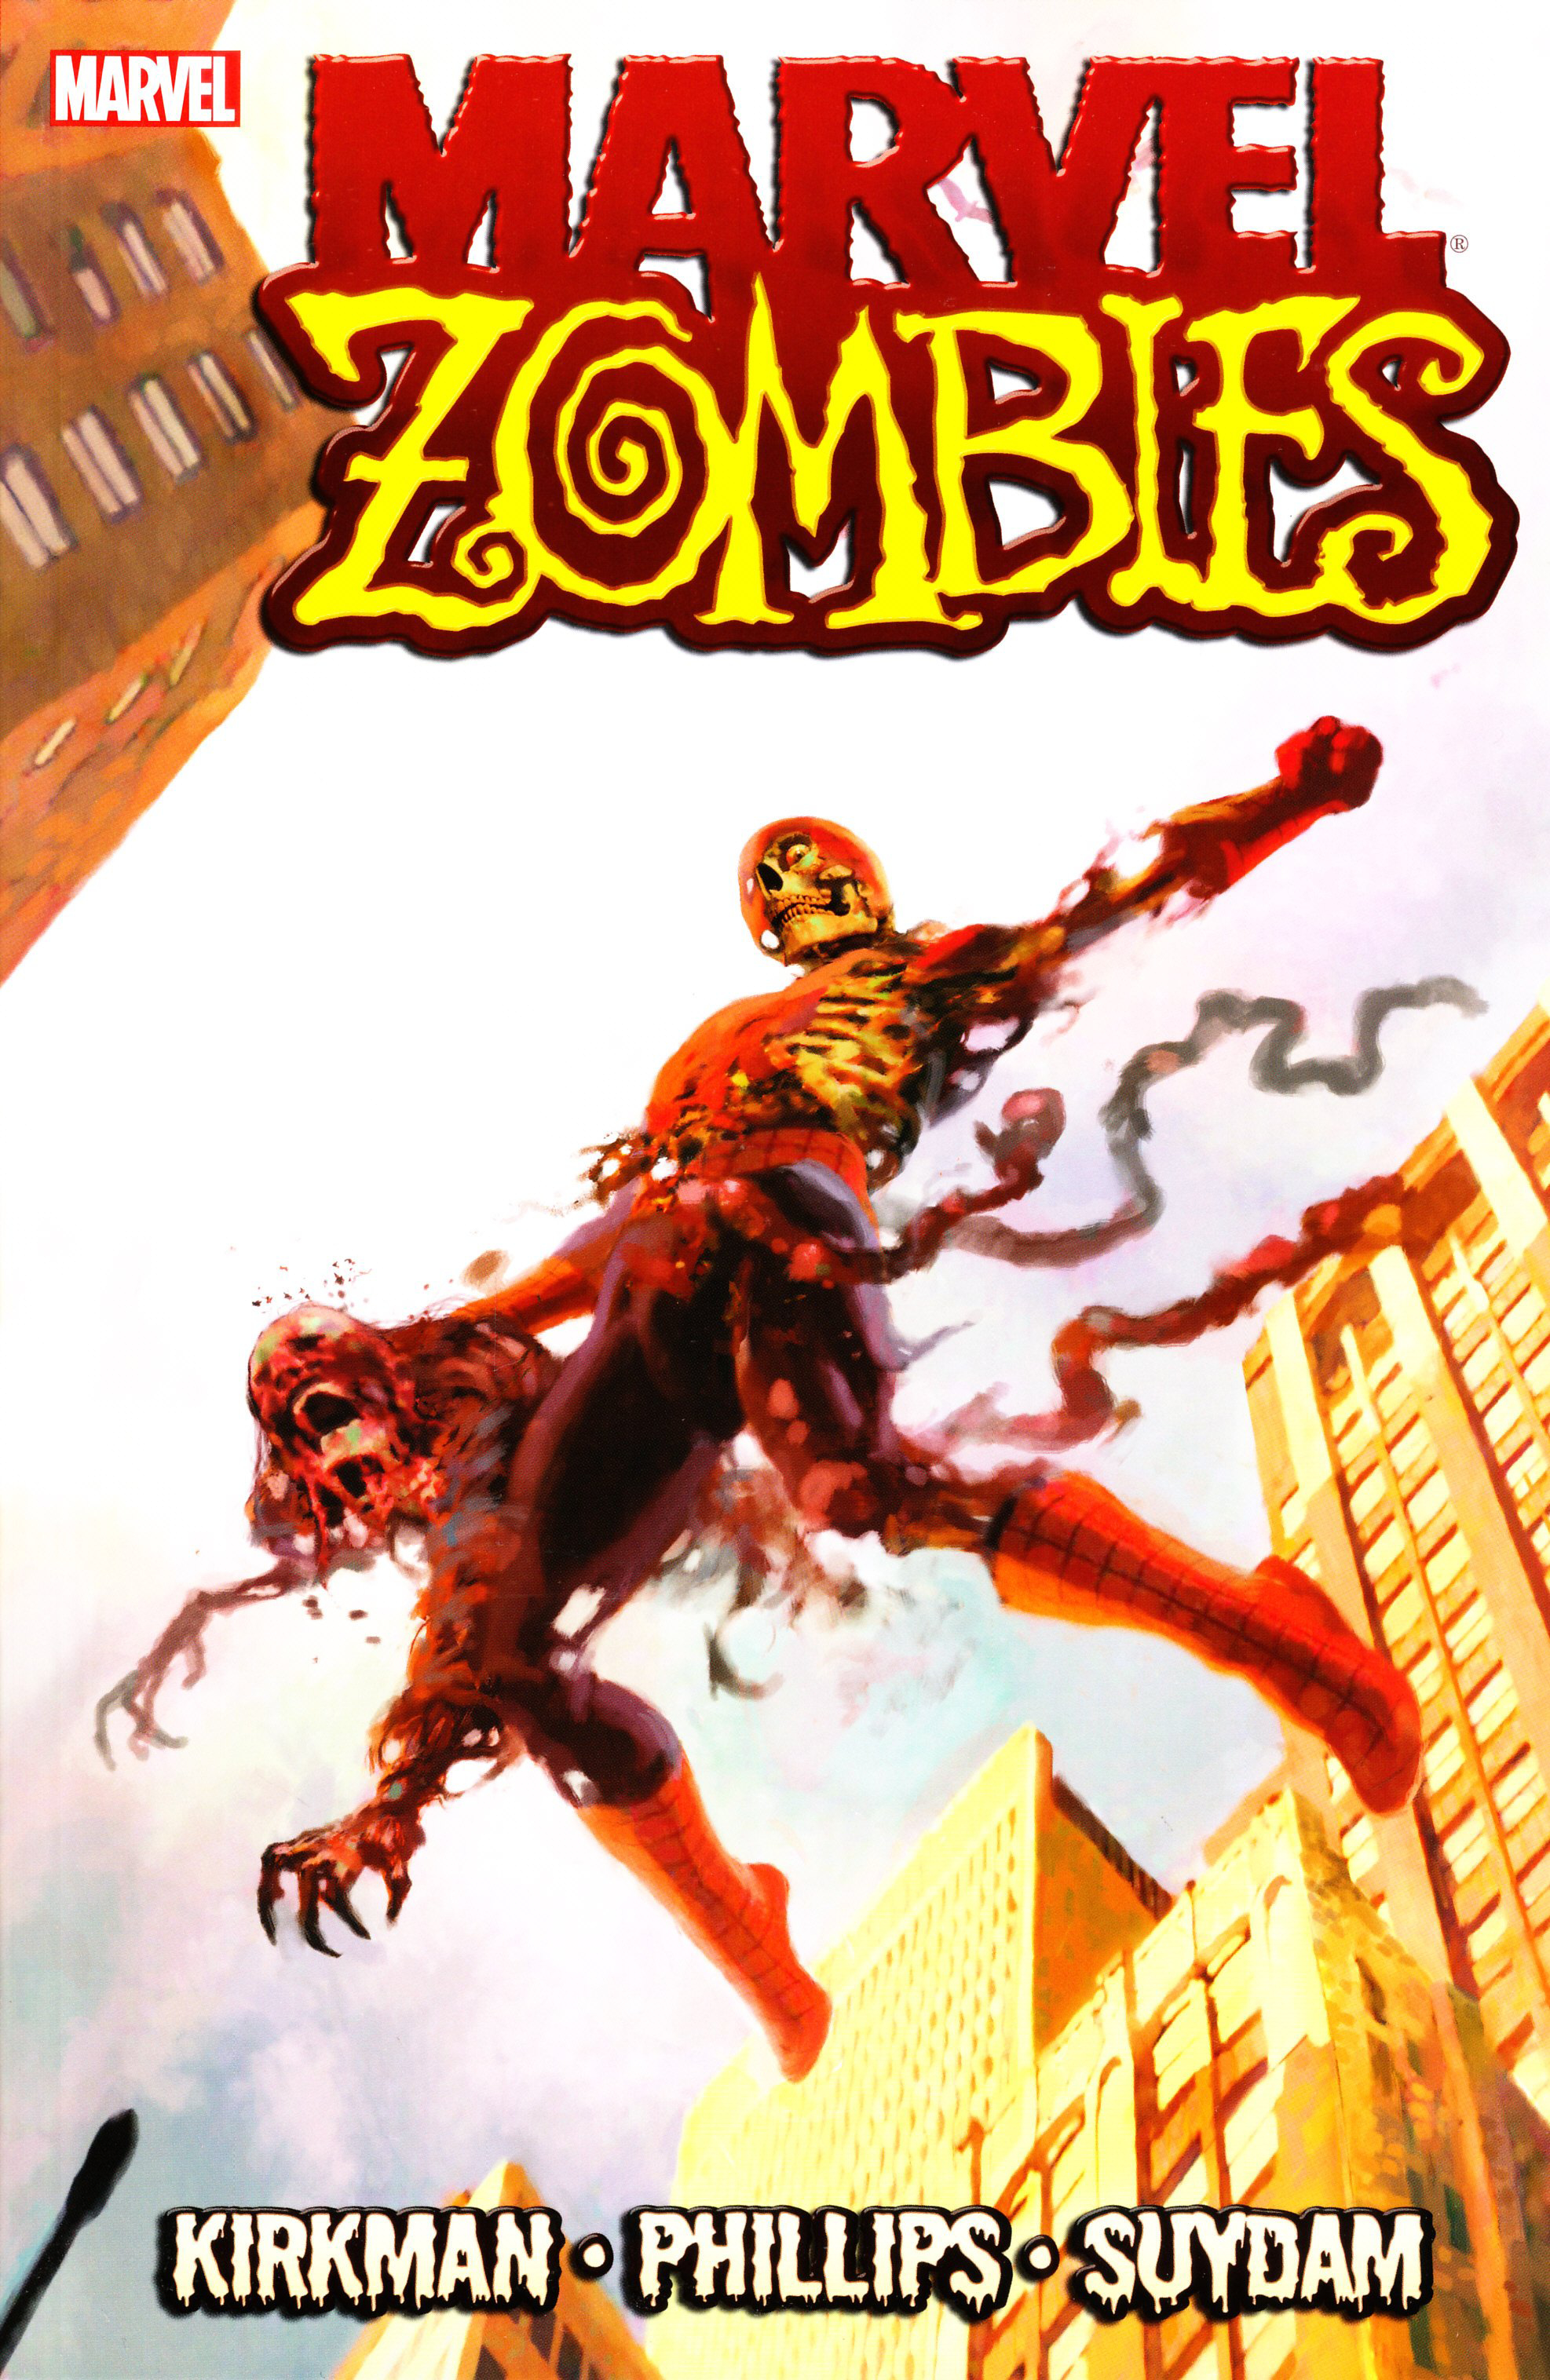 MARVEL ZOMBIES TP VOL 01 SPIDER-MAN CVR